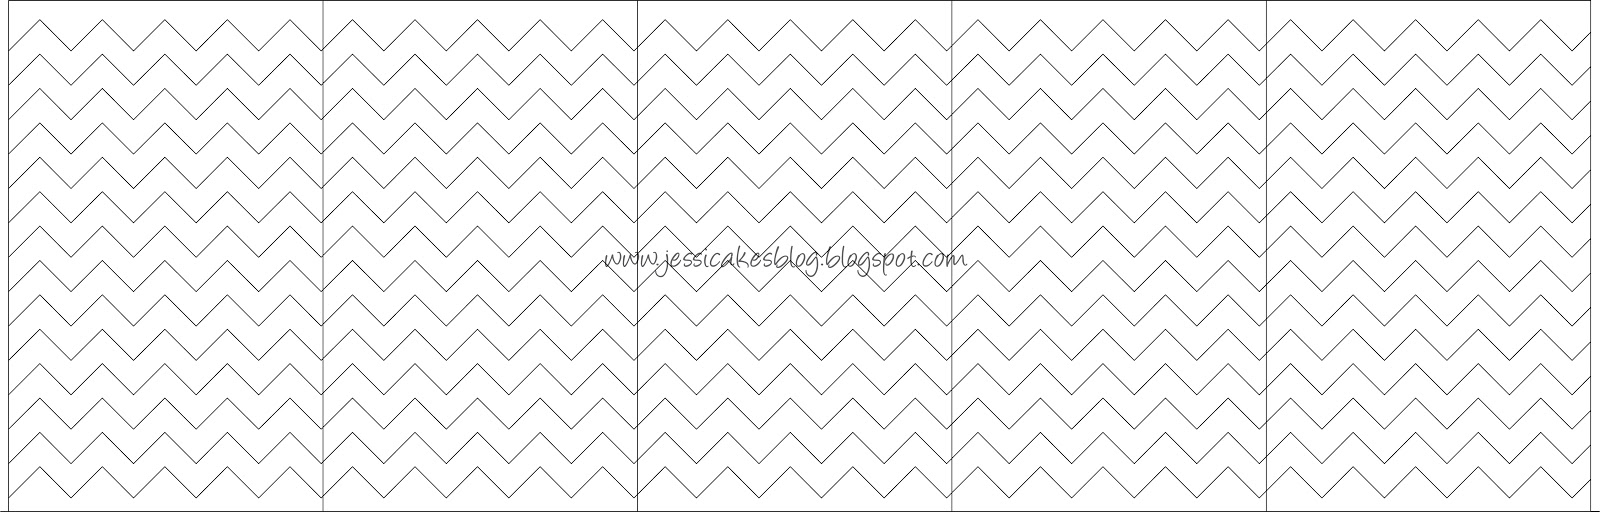 Chevron inspired safari themed baby shower jessica for How to make a chevron template